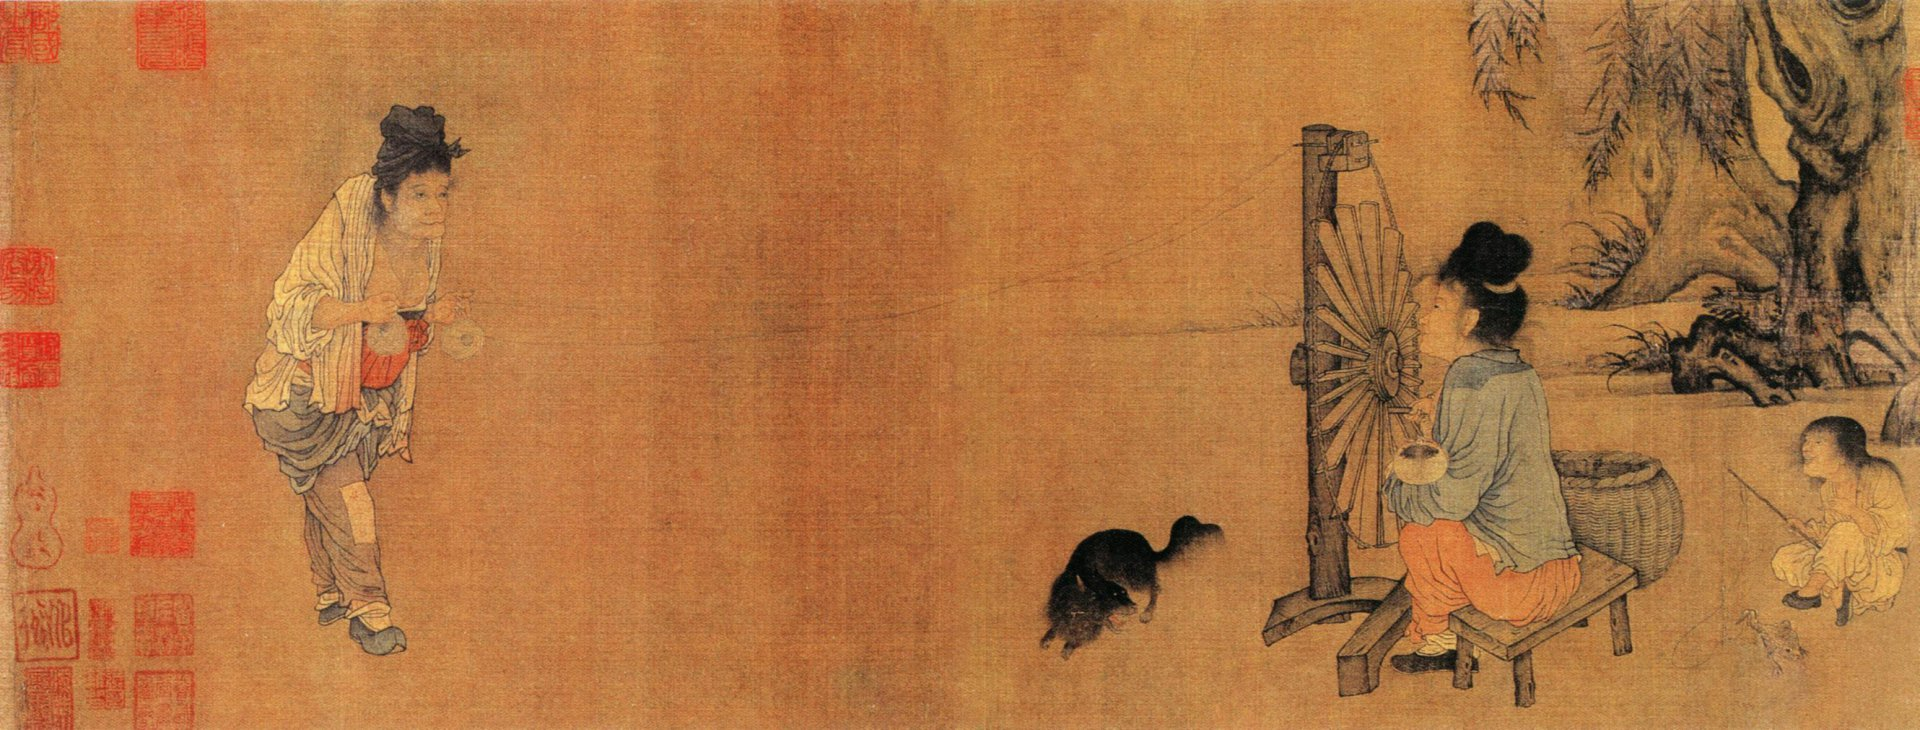 ван цзюйхэн078_1c0098a.Ancient_Chinese_Painting.jpg